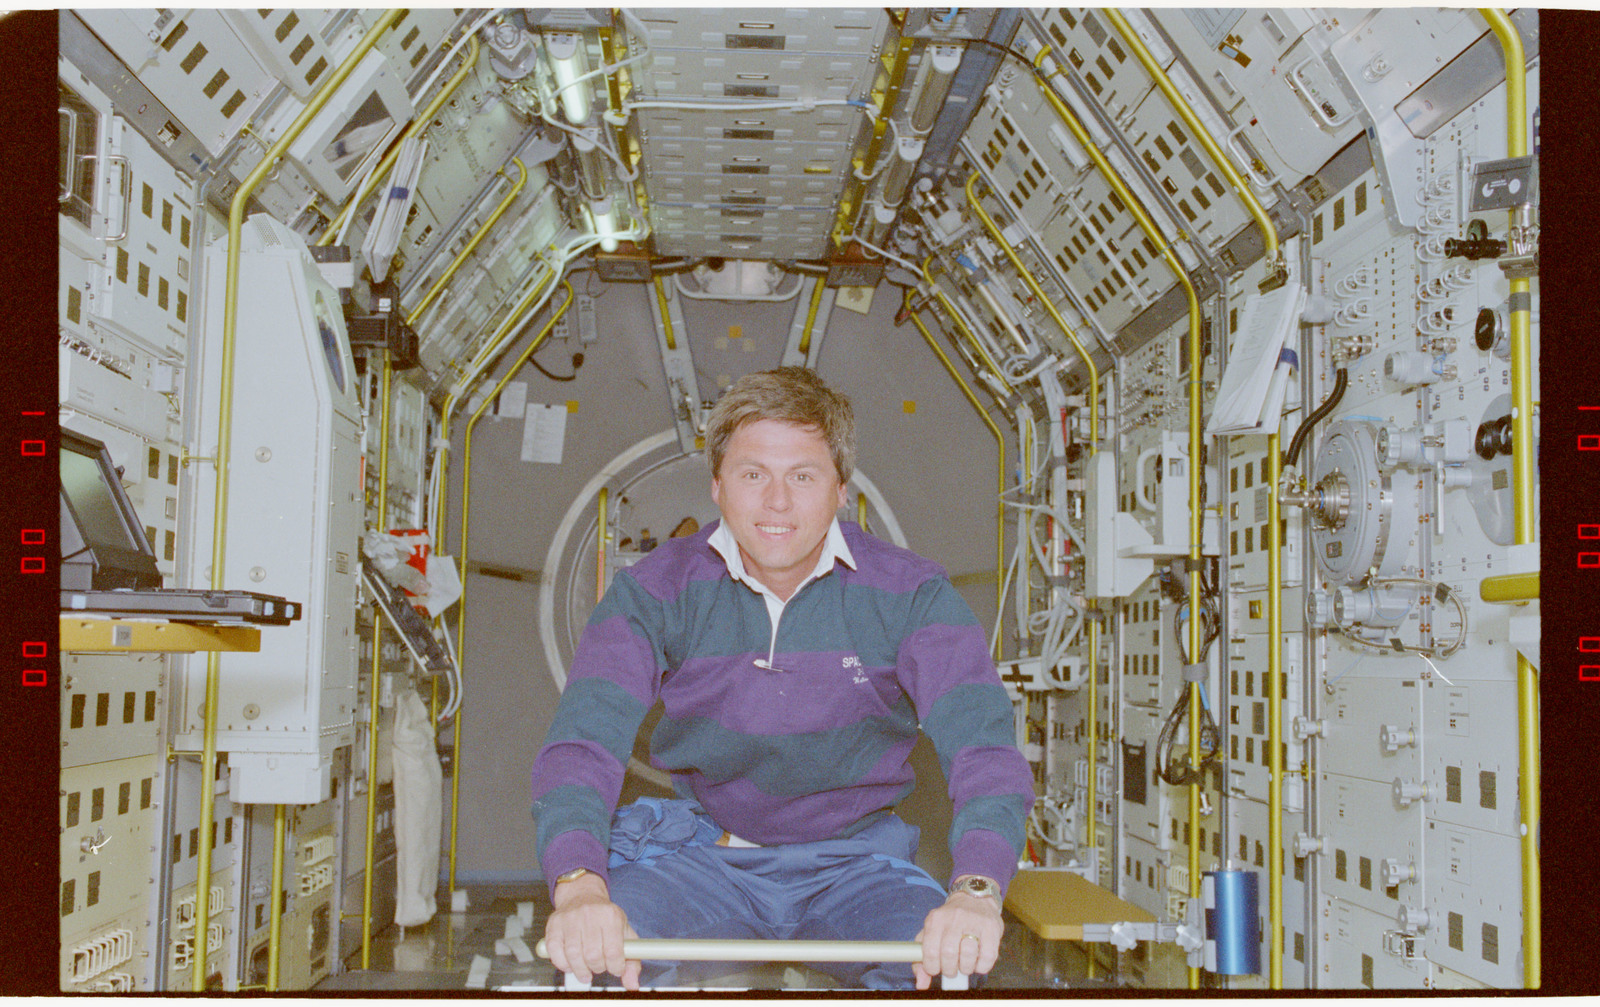 STS055-219-005 - STS-055 - Crewmember in the D-2 Spacelab.